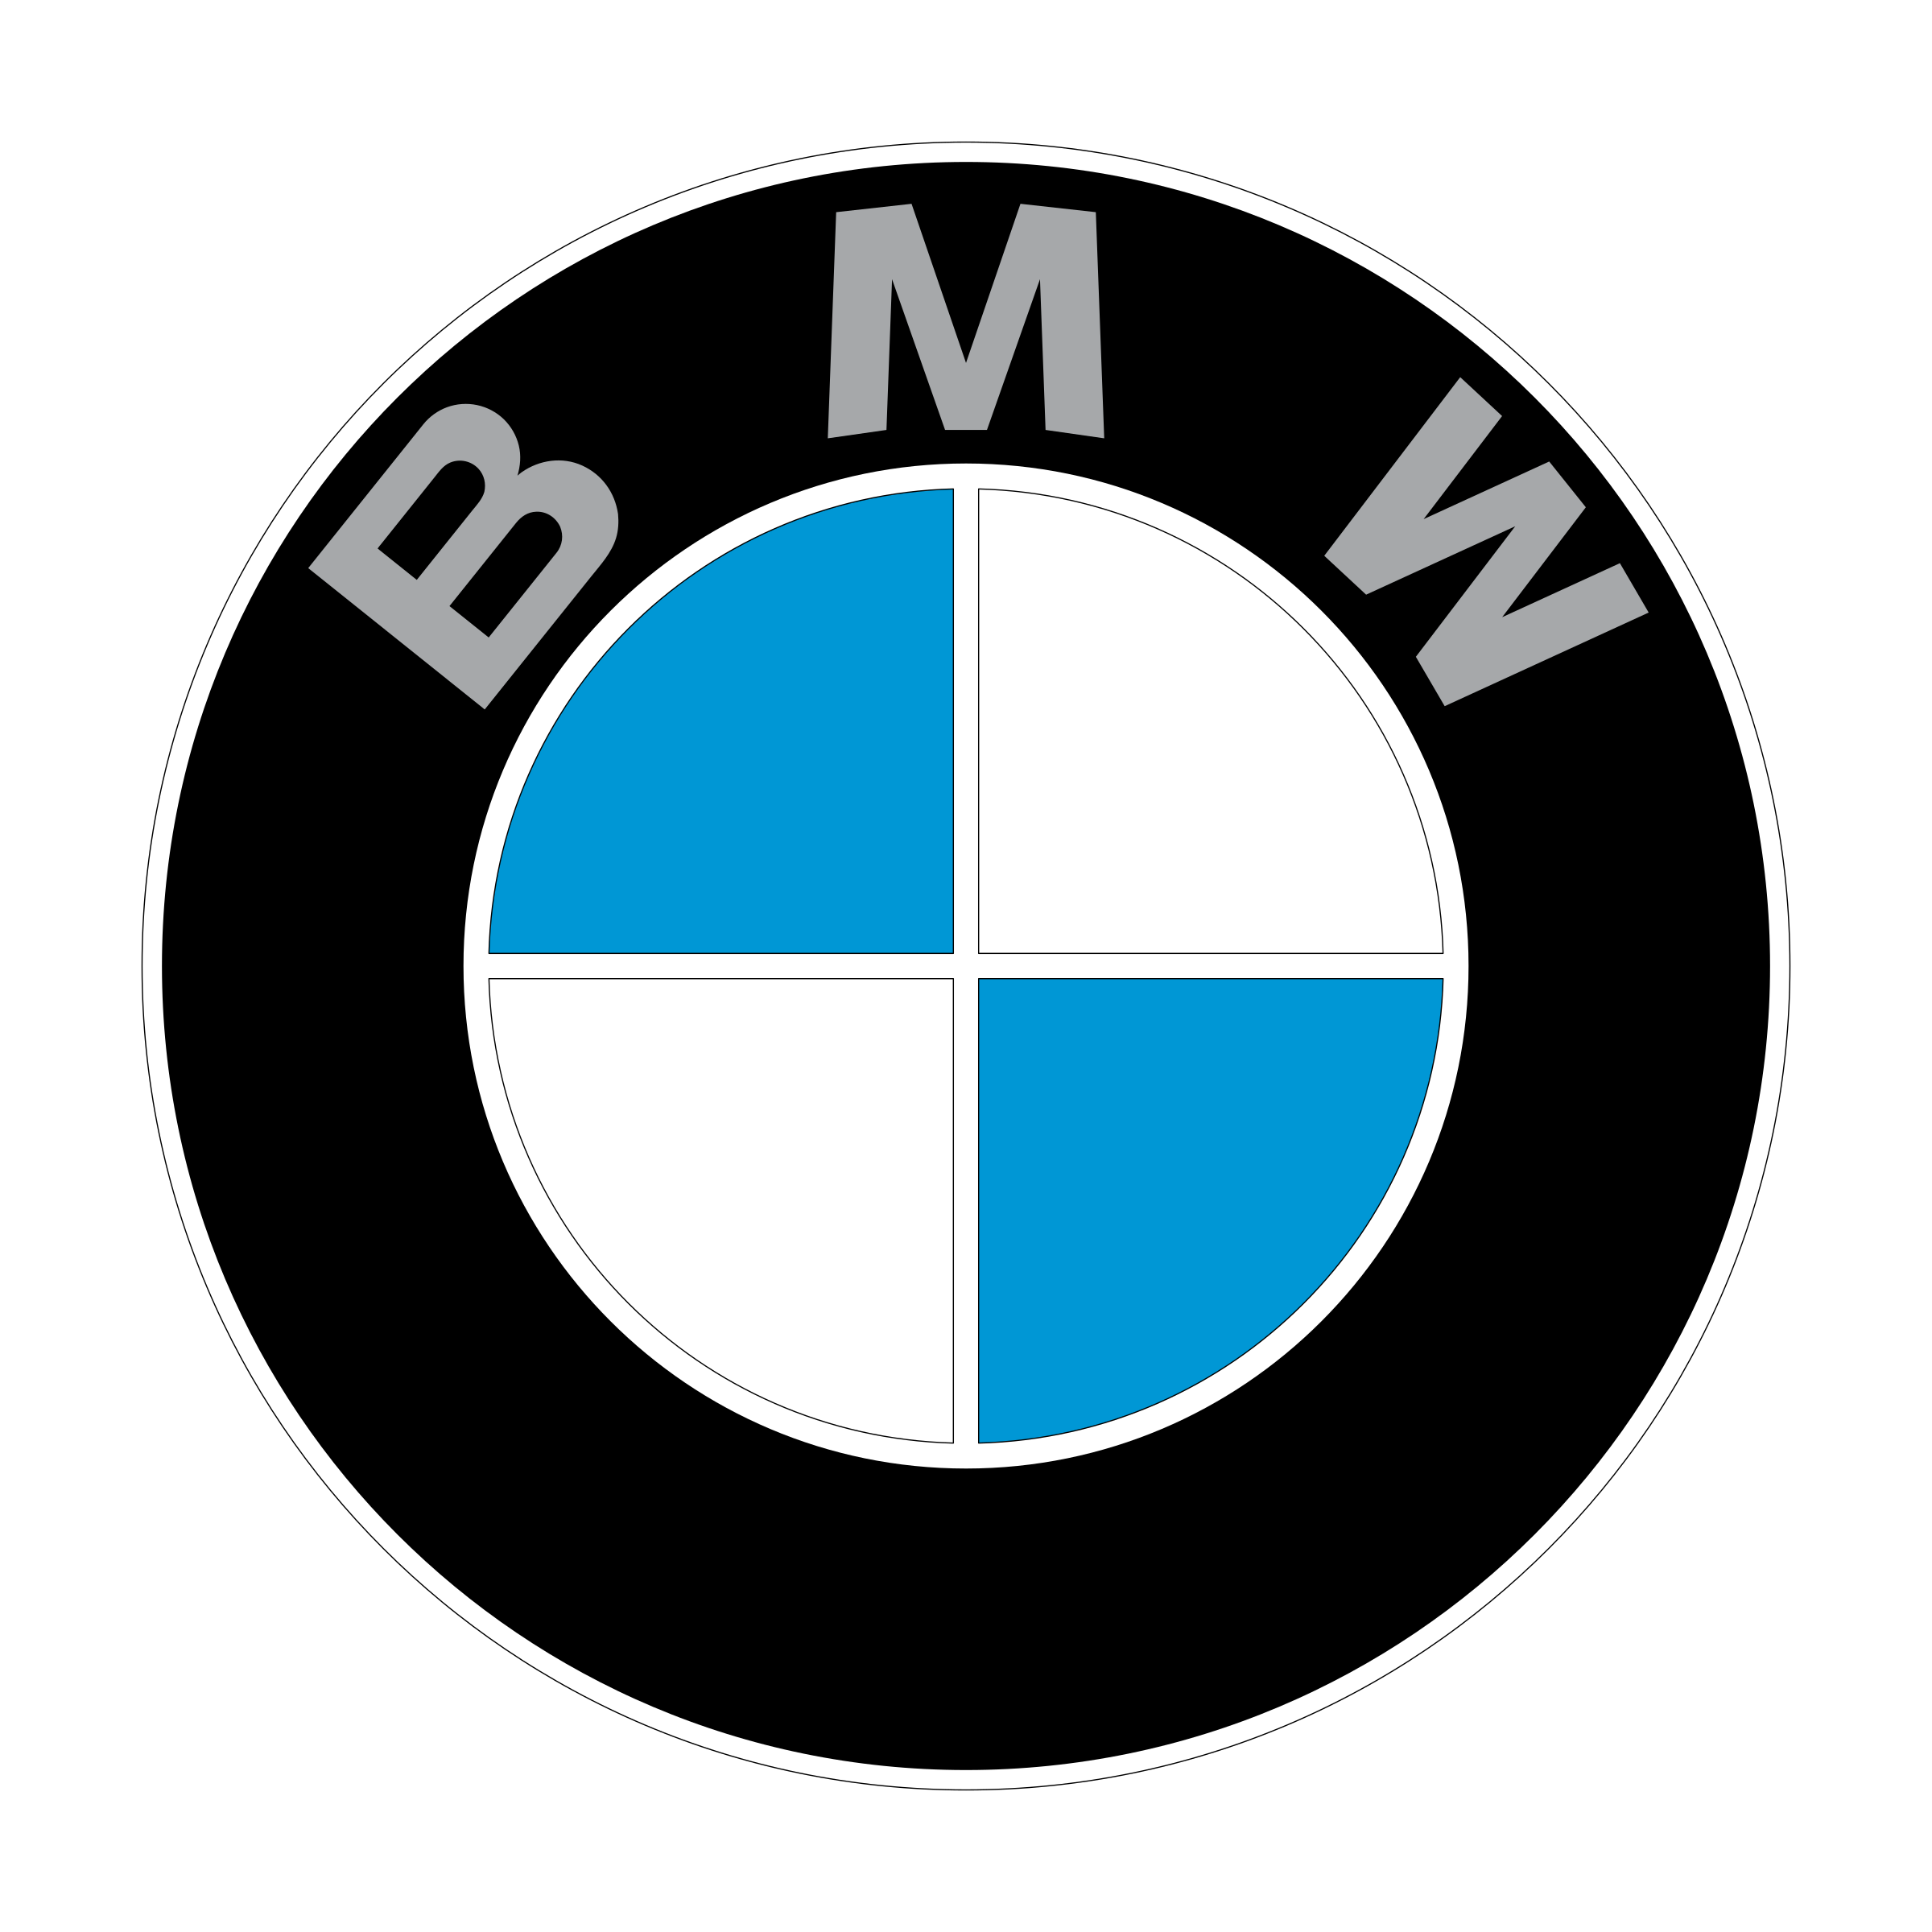 bmw-01-logo-png-transparent